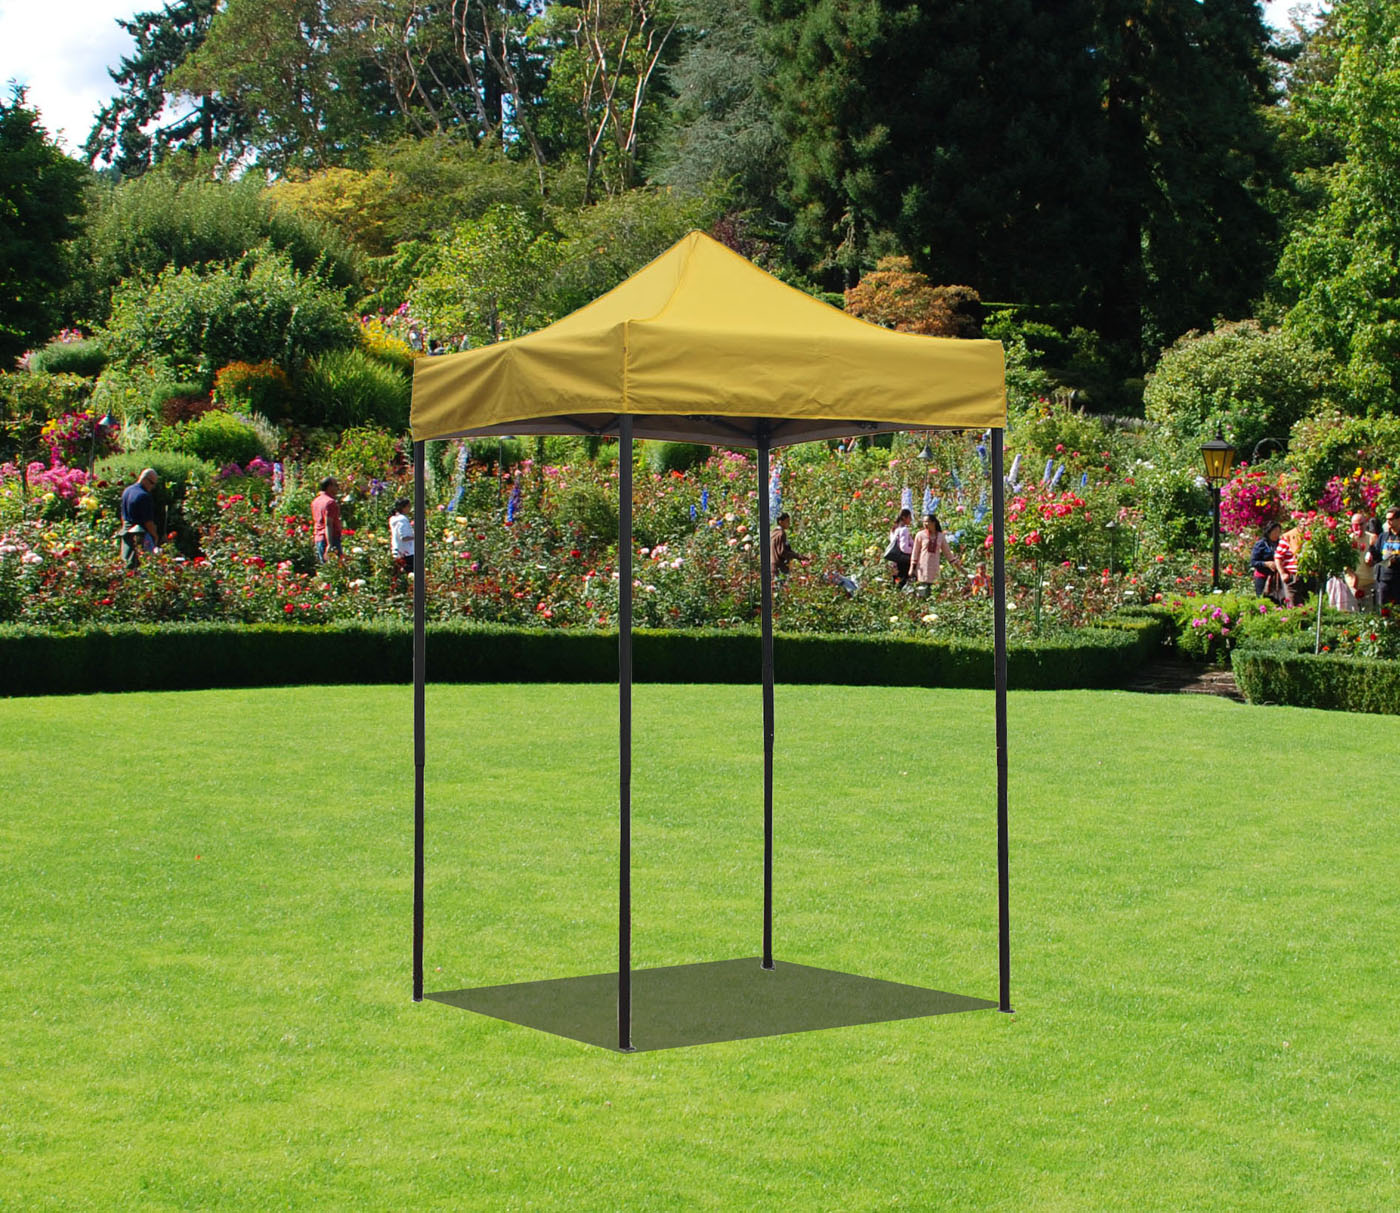 Canopy Tent 5 x 5 Commercial Fair Shelter Car Shelter Wedding Party Easy Pop Up by